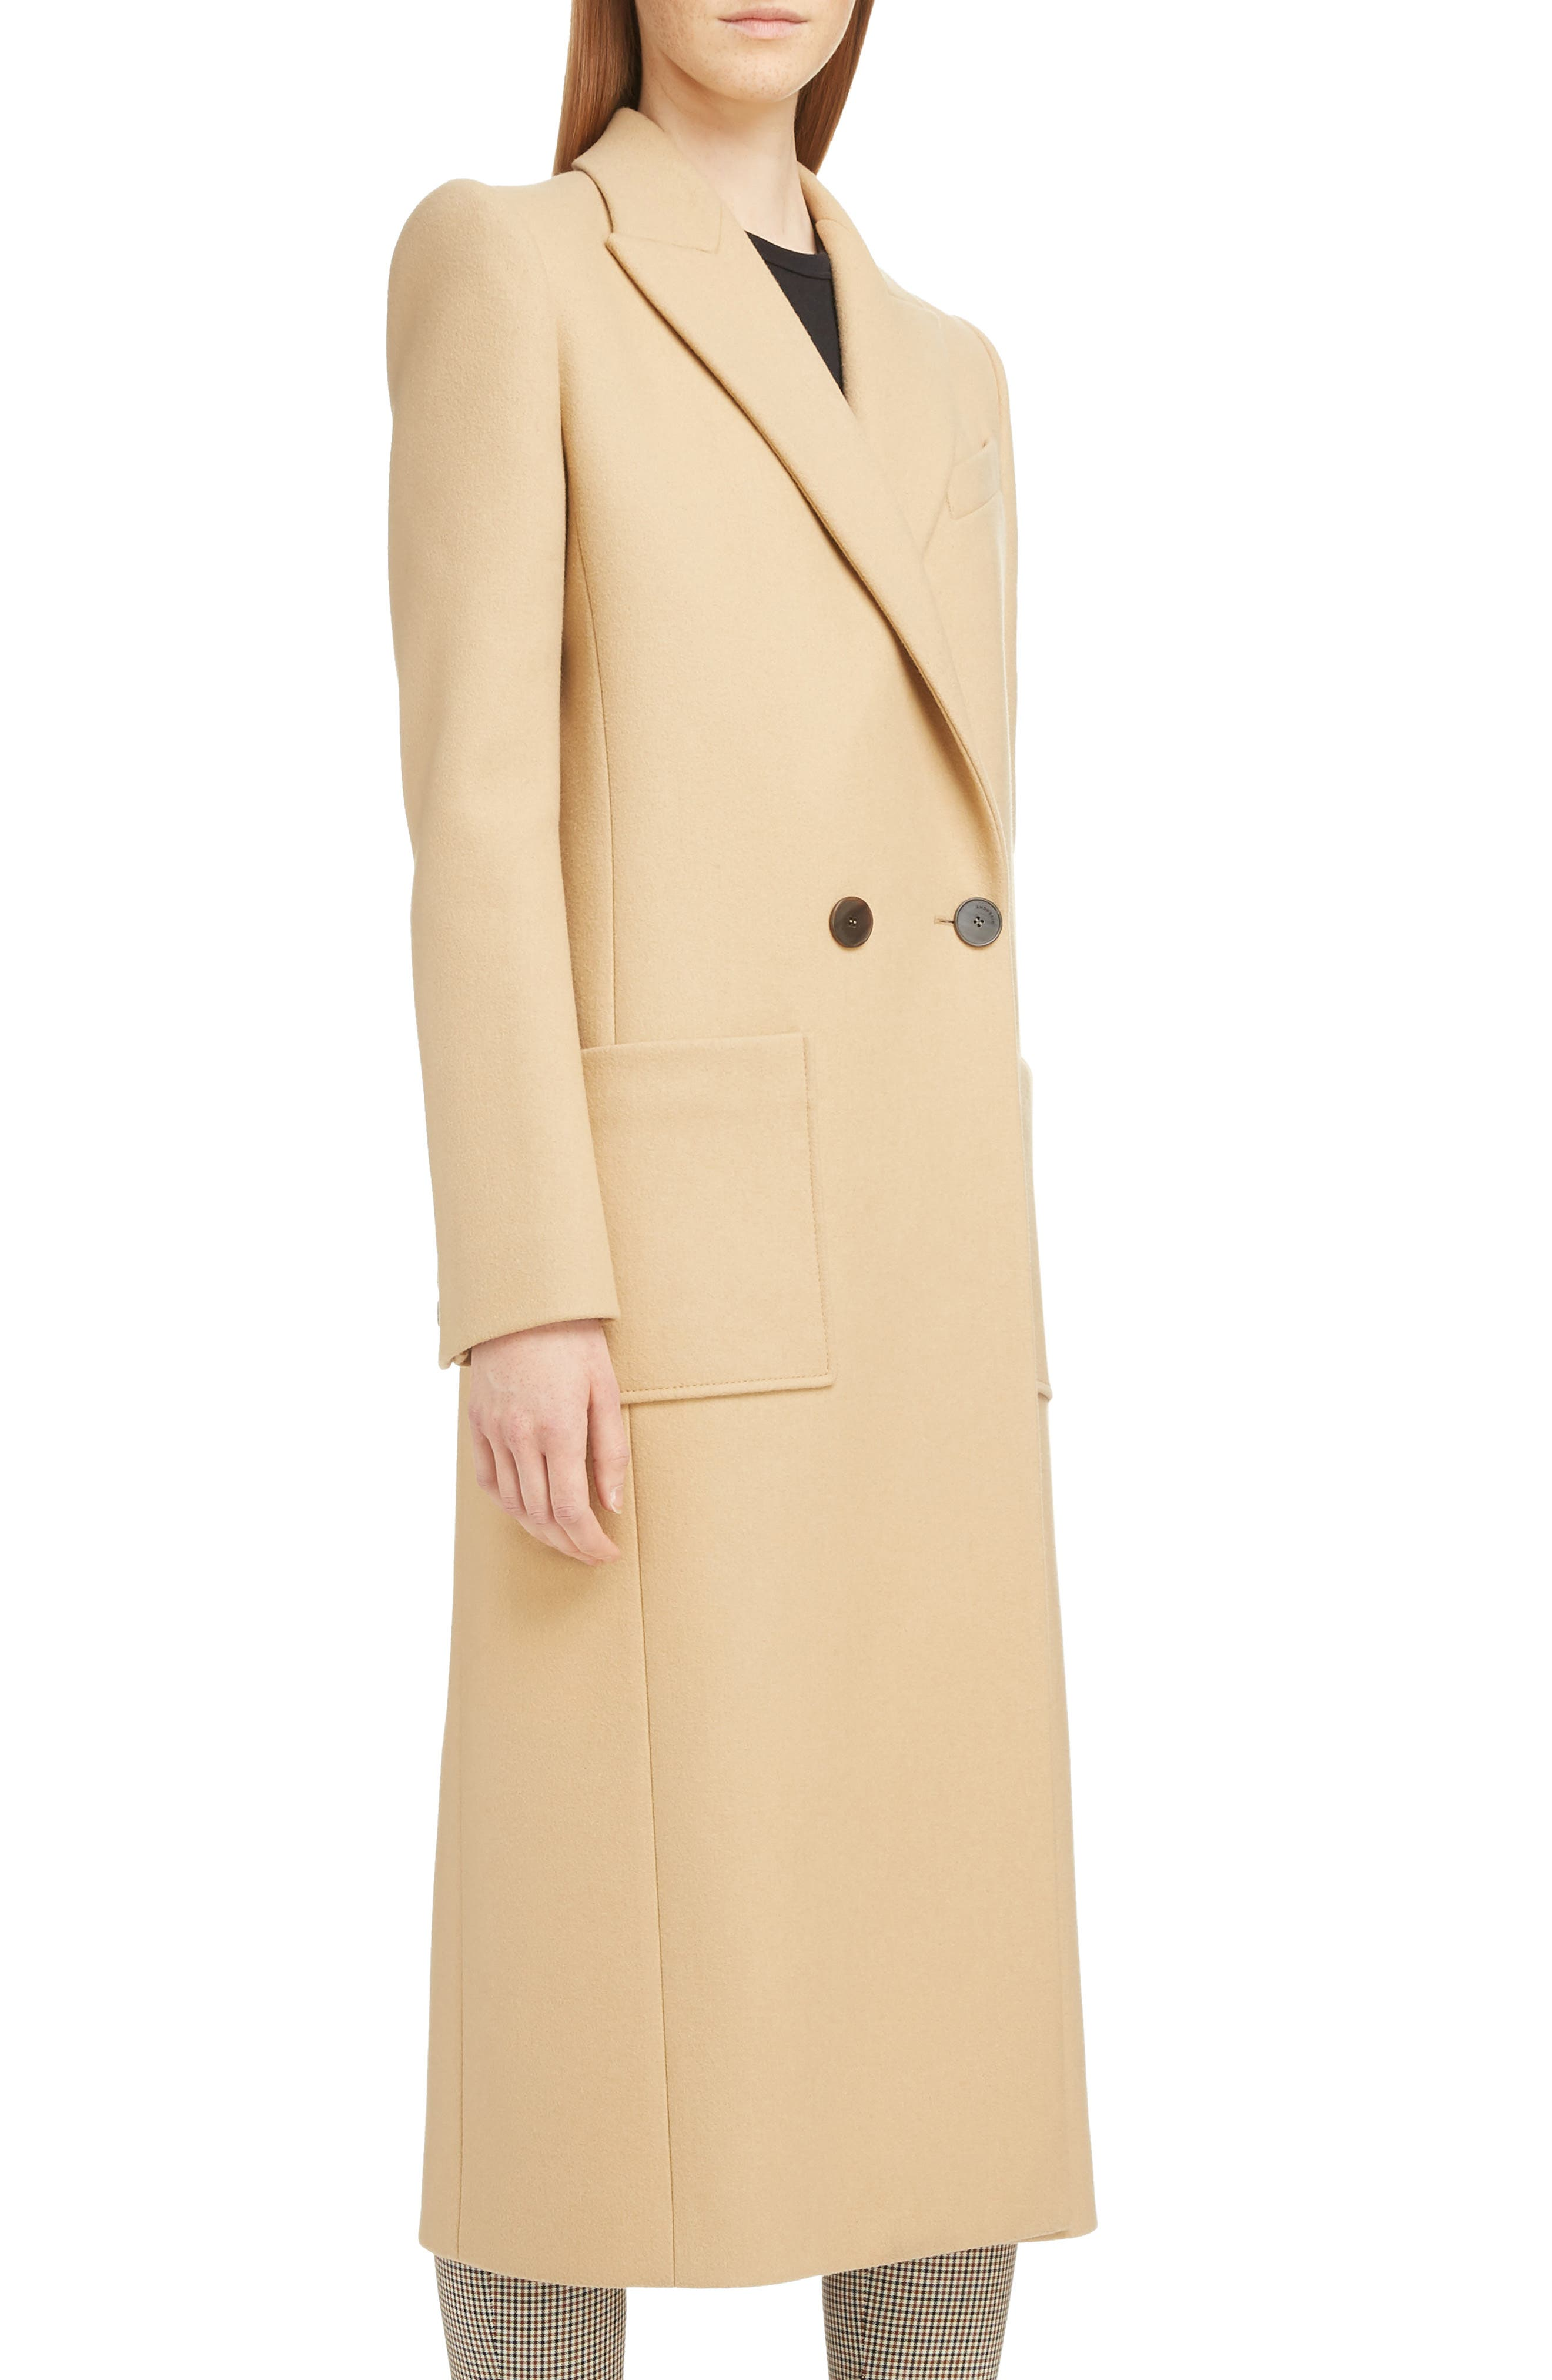 GIVENCHY,                             Double Breasted Wool Coat,                             Alternate thumbnail 4, color,                             250-BEIGE